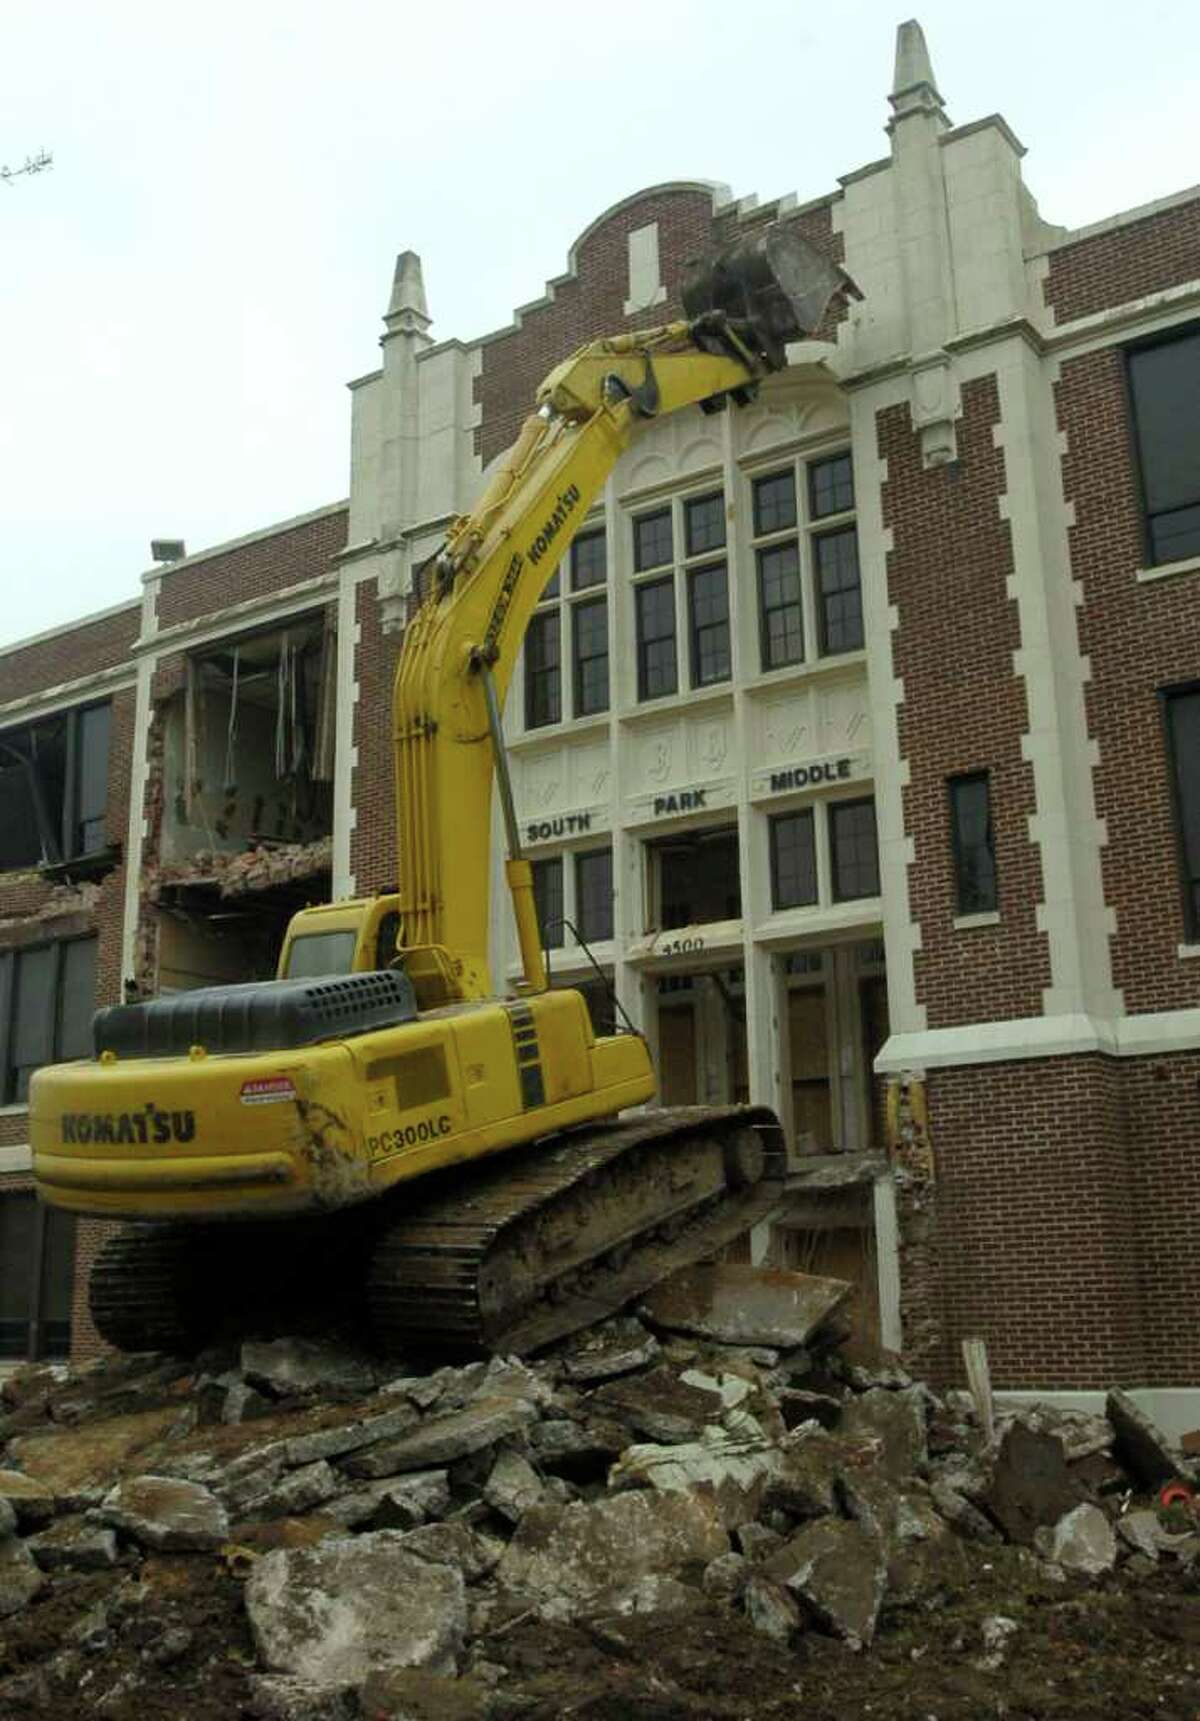 The Ambush Demolition excavator lines up to the front facade of the South Park Middle School as demolition began in April, 2010. Dave Ryan/The Enterprise